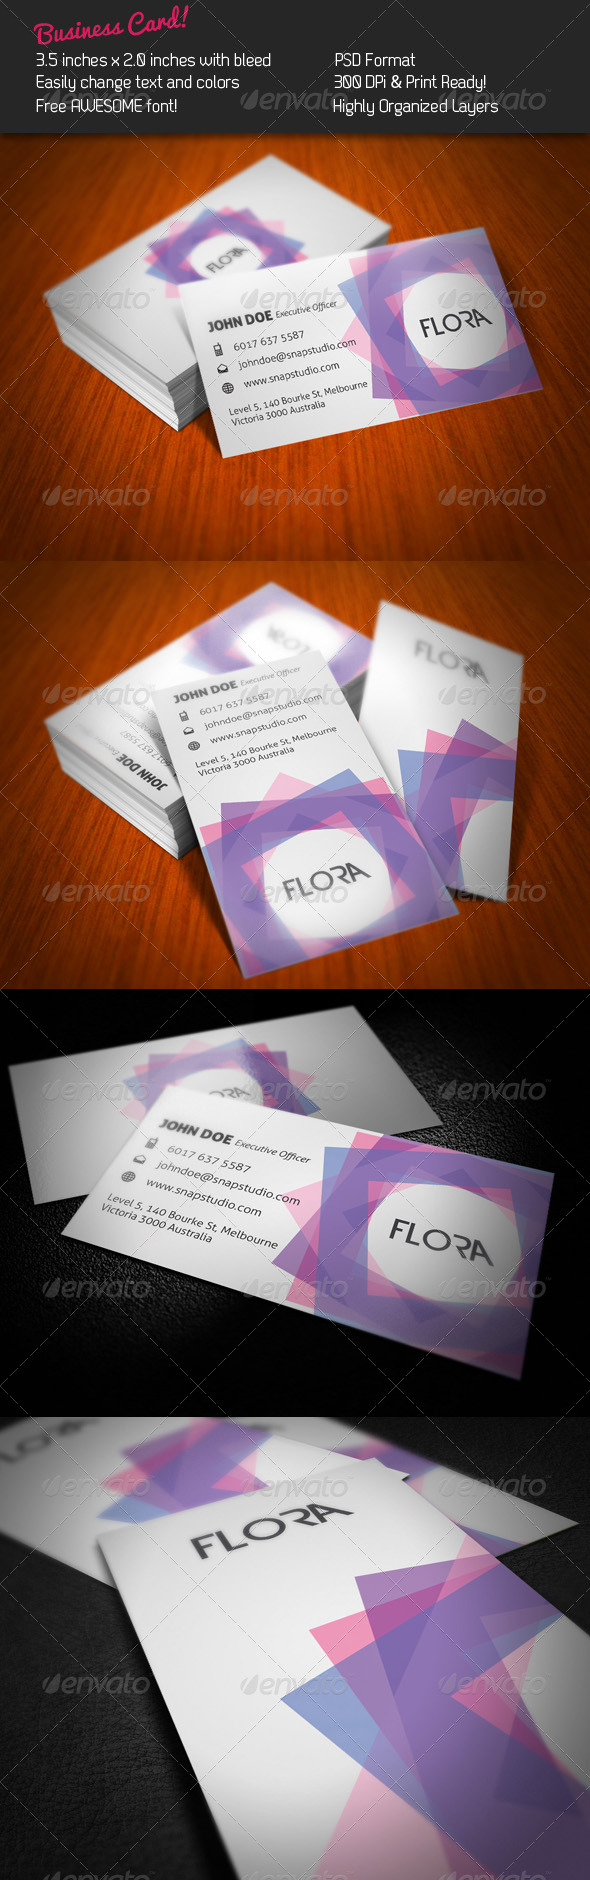 Flora Business Card - Creative Business Cards